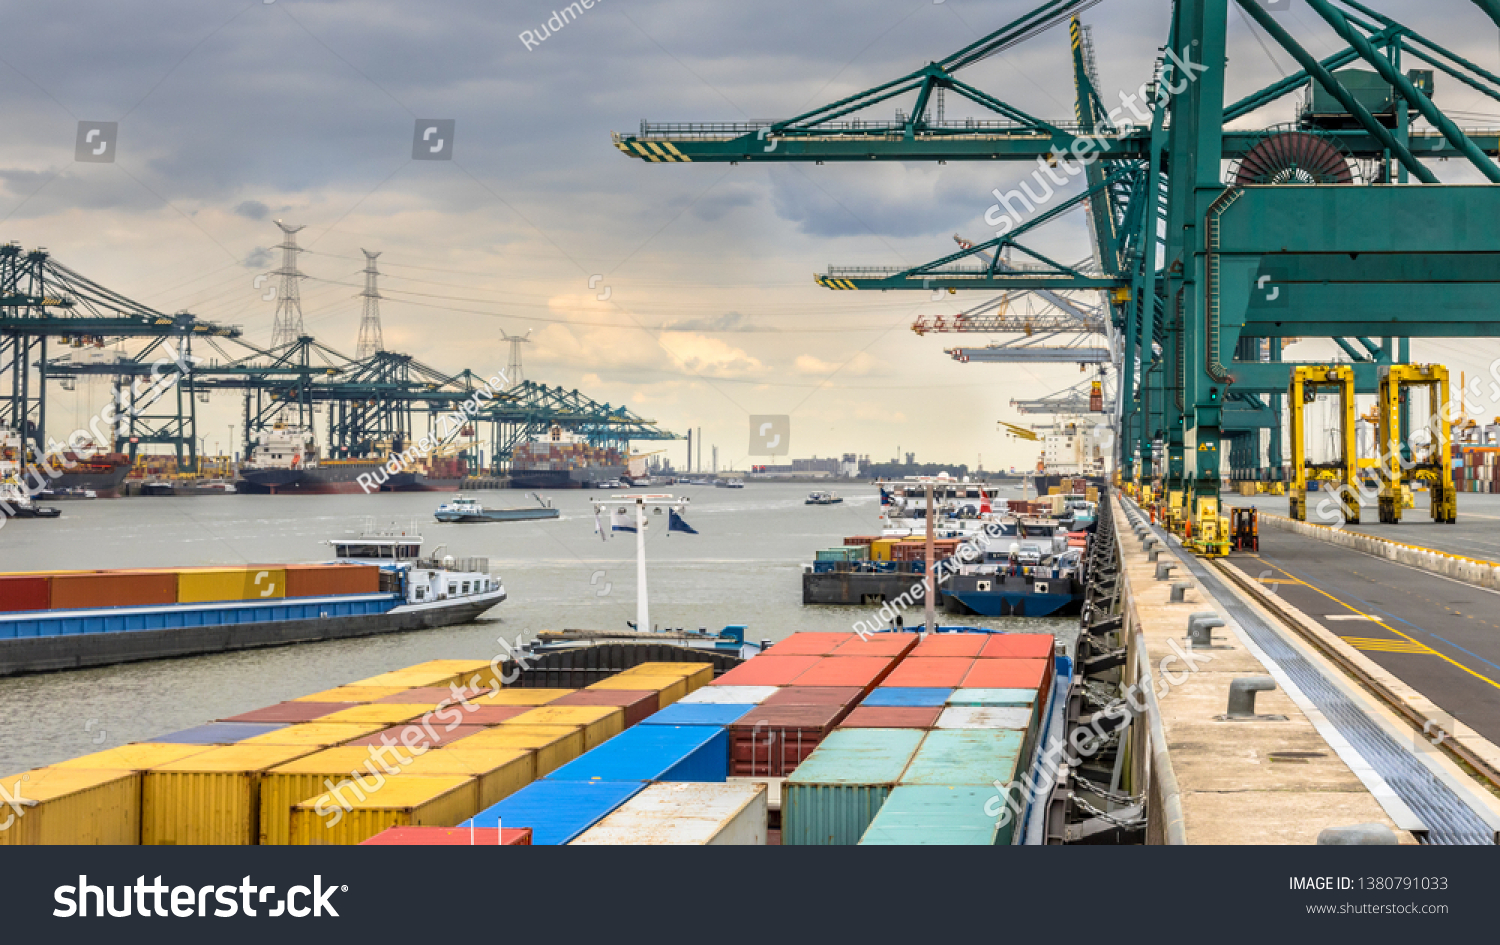 Loaded ships in busy port of Antwerp at container terminal with automated cranes and lots of vessels. Belgium #1380791033